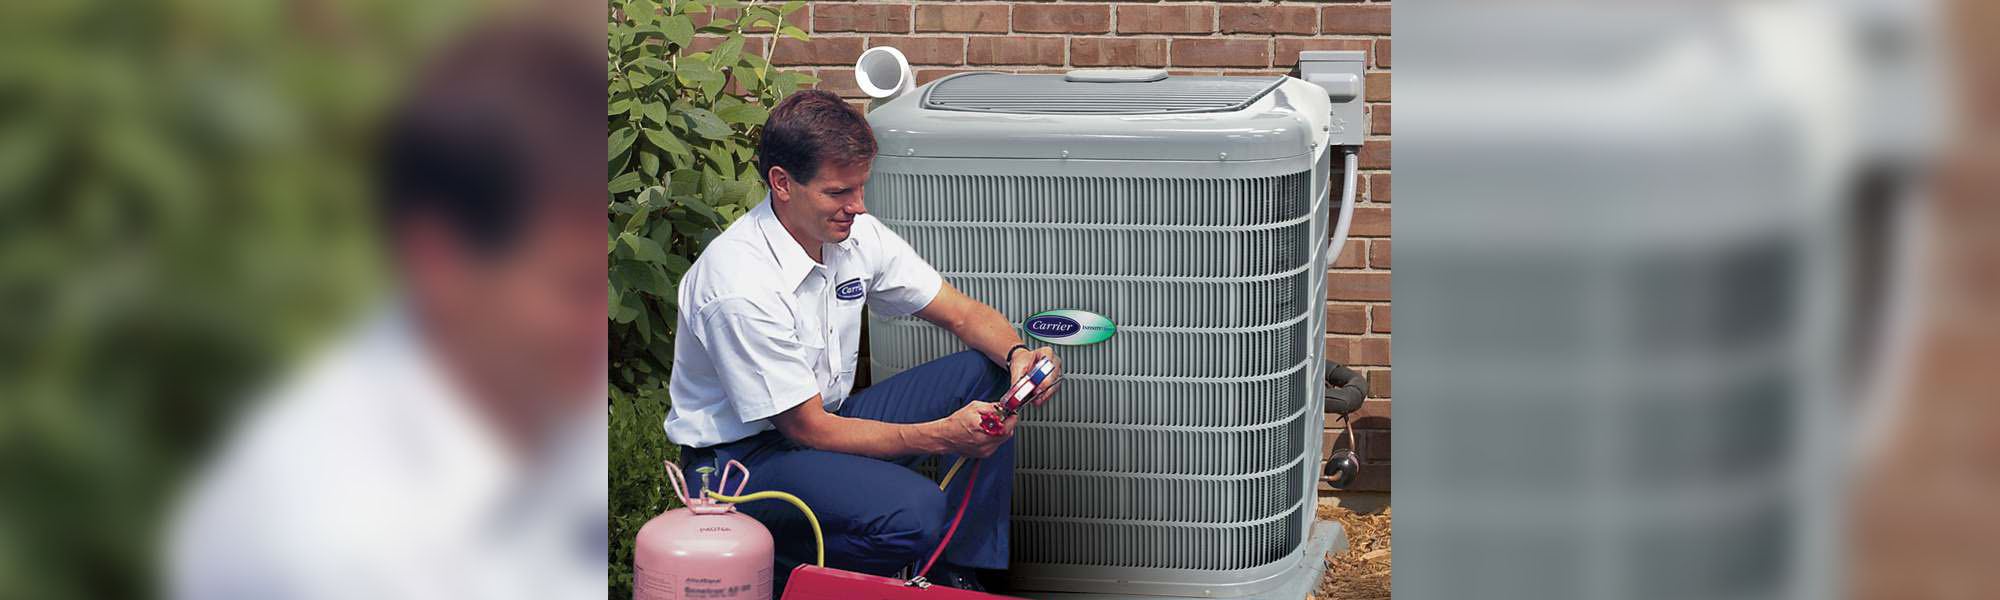 Air Conditioning installation Stockton CA